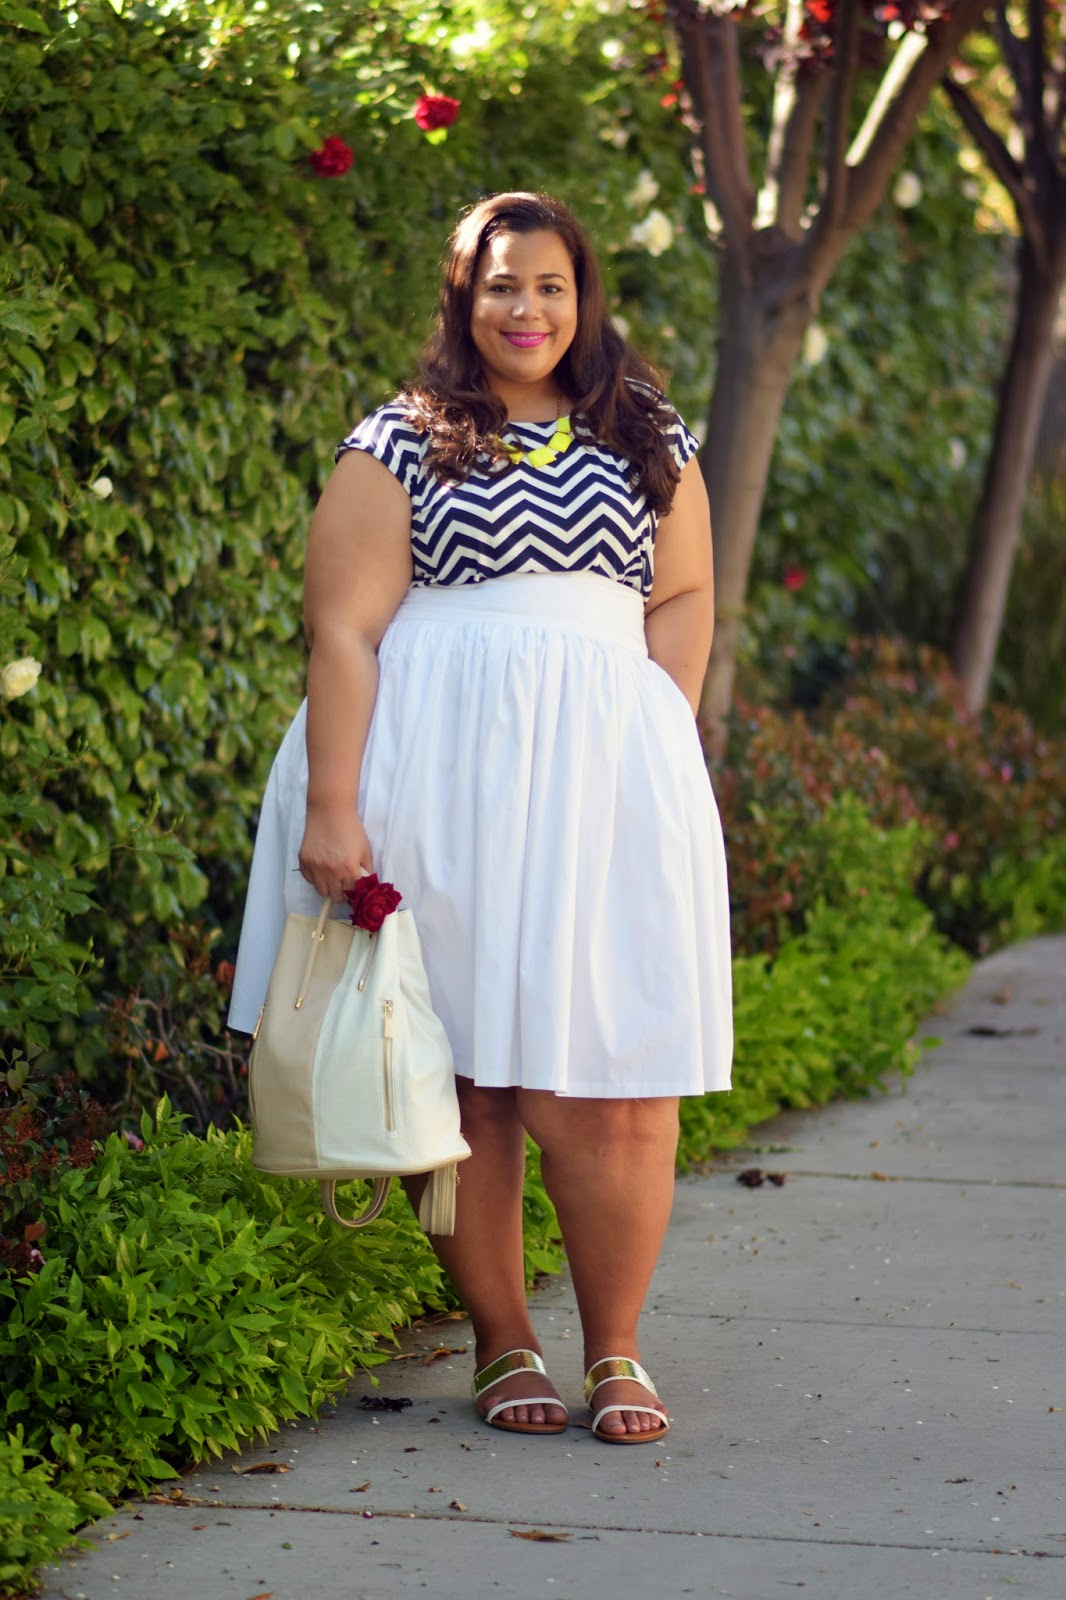 Ross Plus Size clothing, Plus size flare skirt